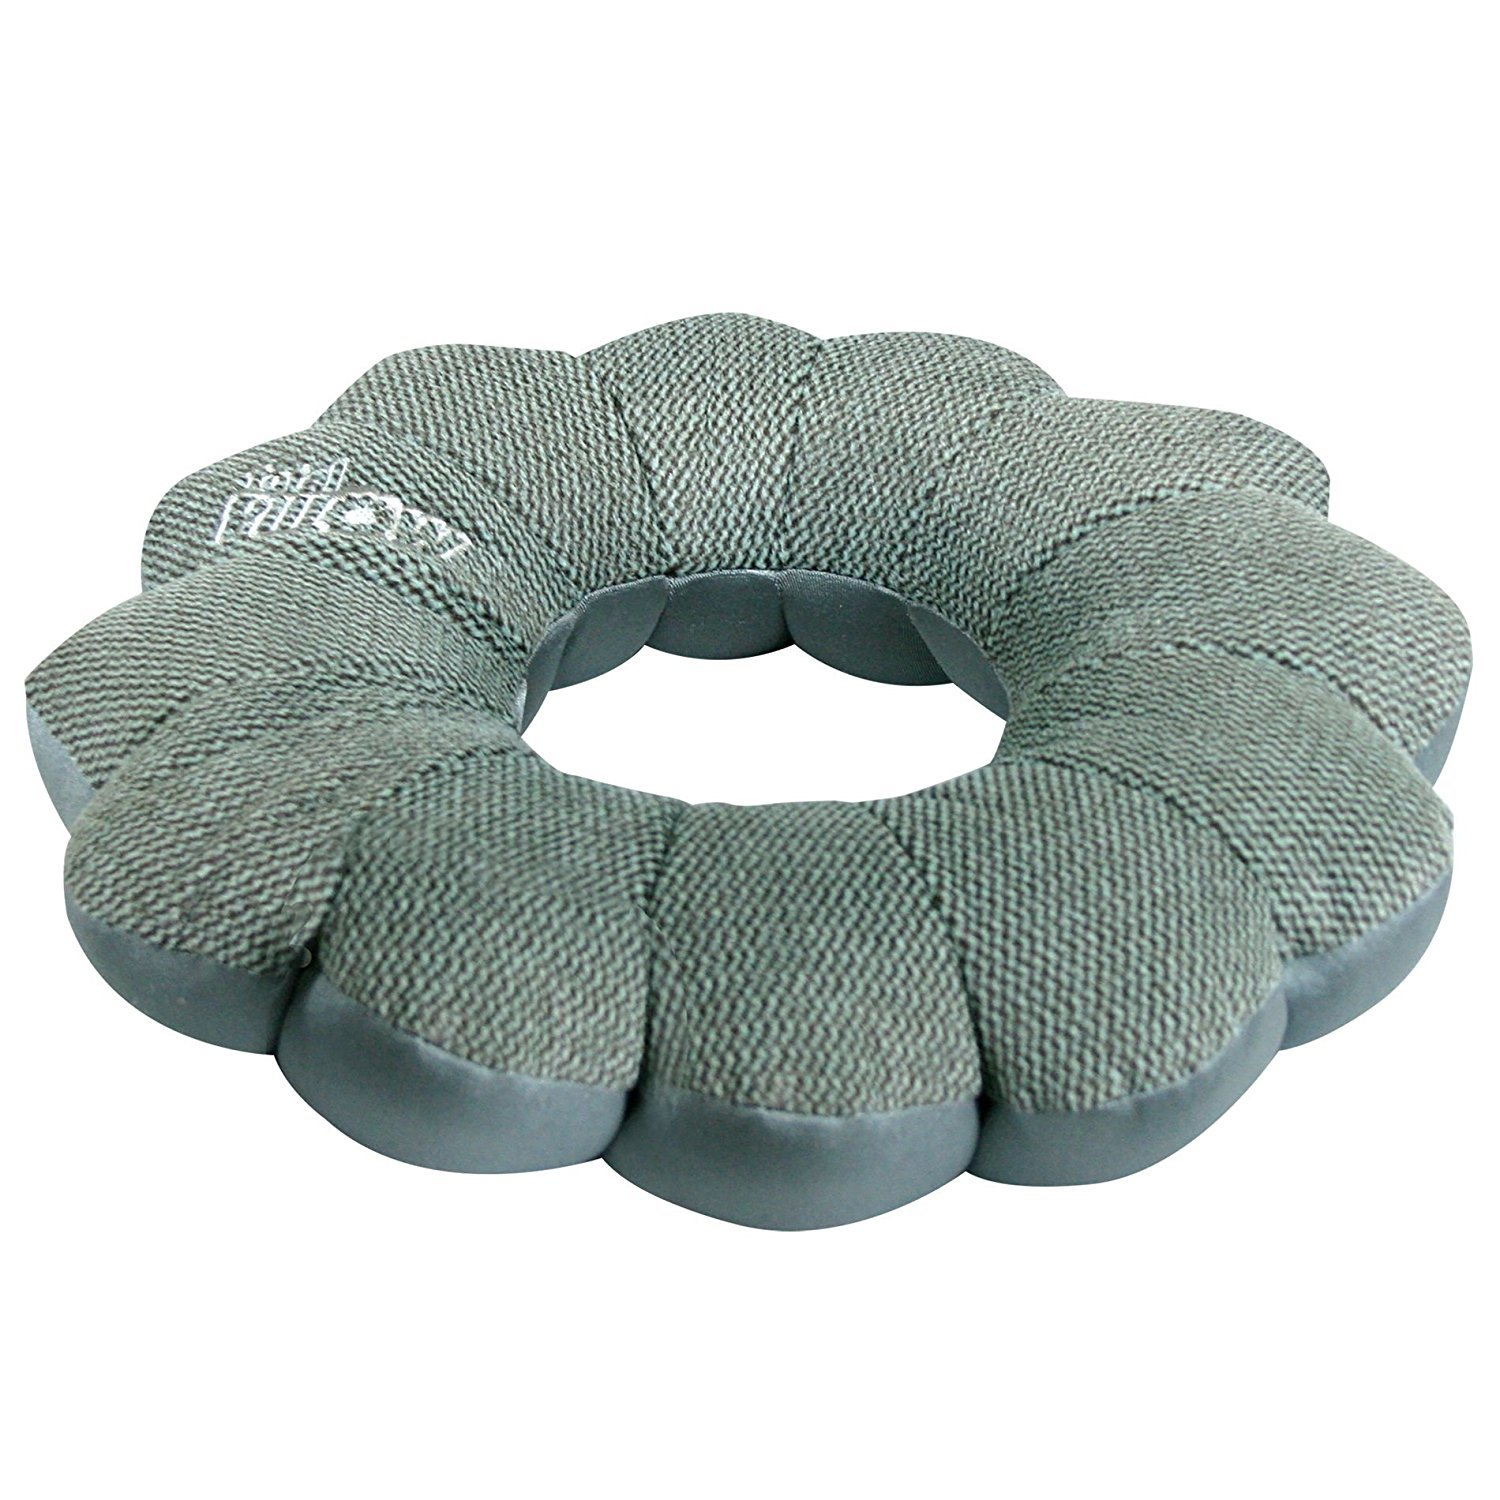 Back and Knees COMIN18JU037982 Use at Home or On The Go To Support Your Neck Exclusive Designer Collection Total Pillow Microbead Portable Pillow Classic Slate Hampton Direct Inc